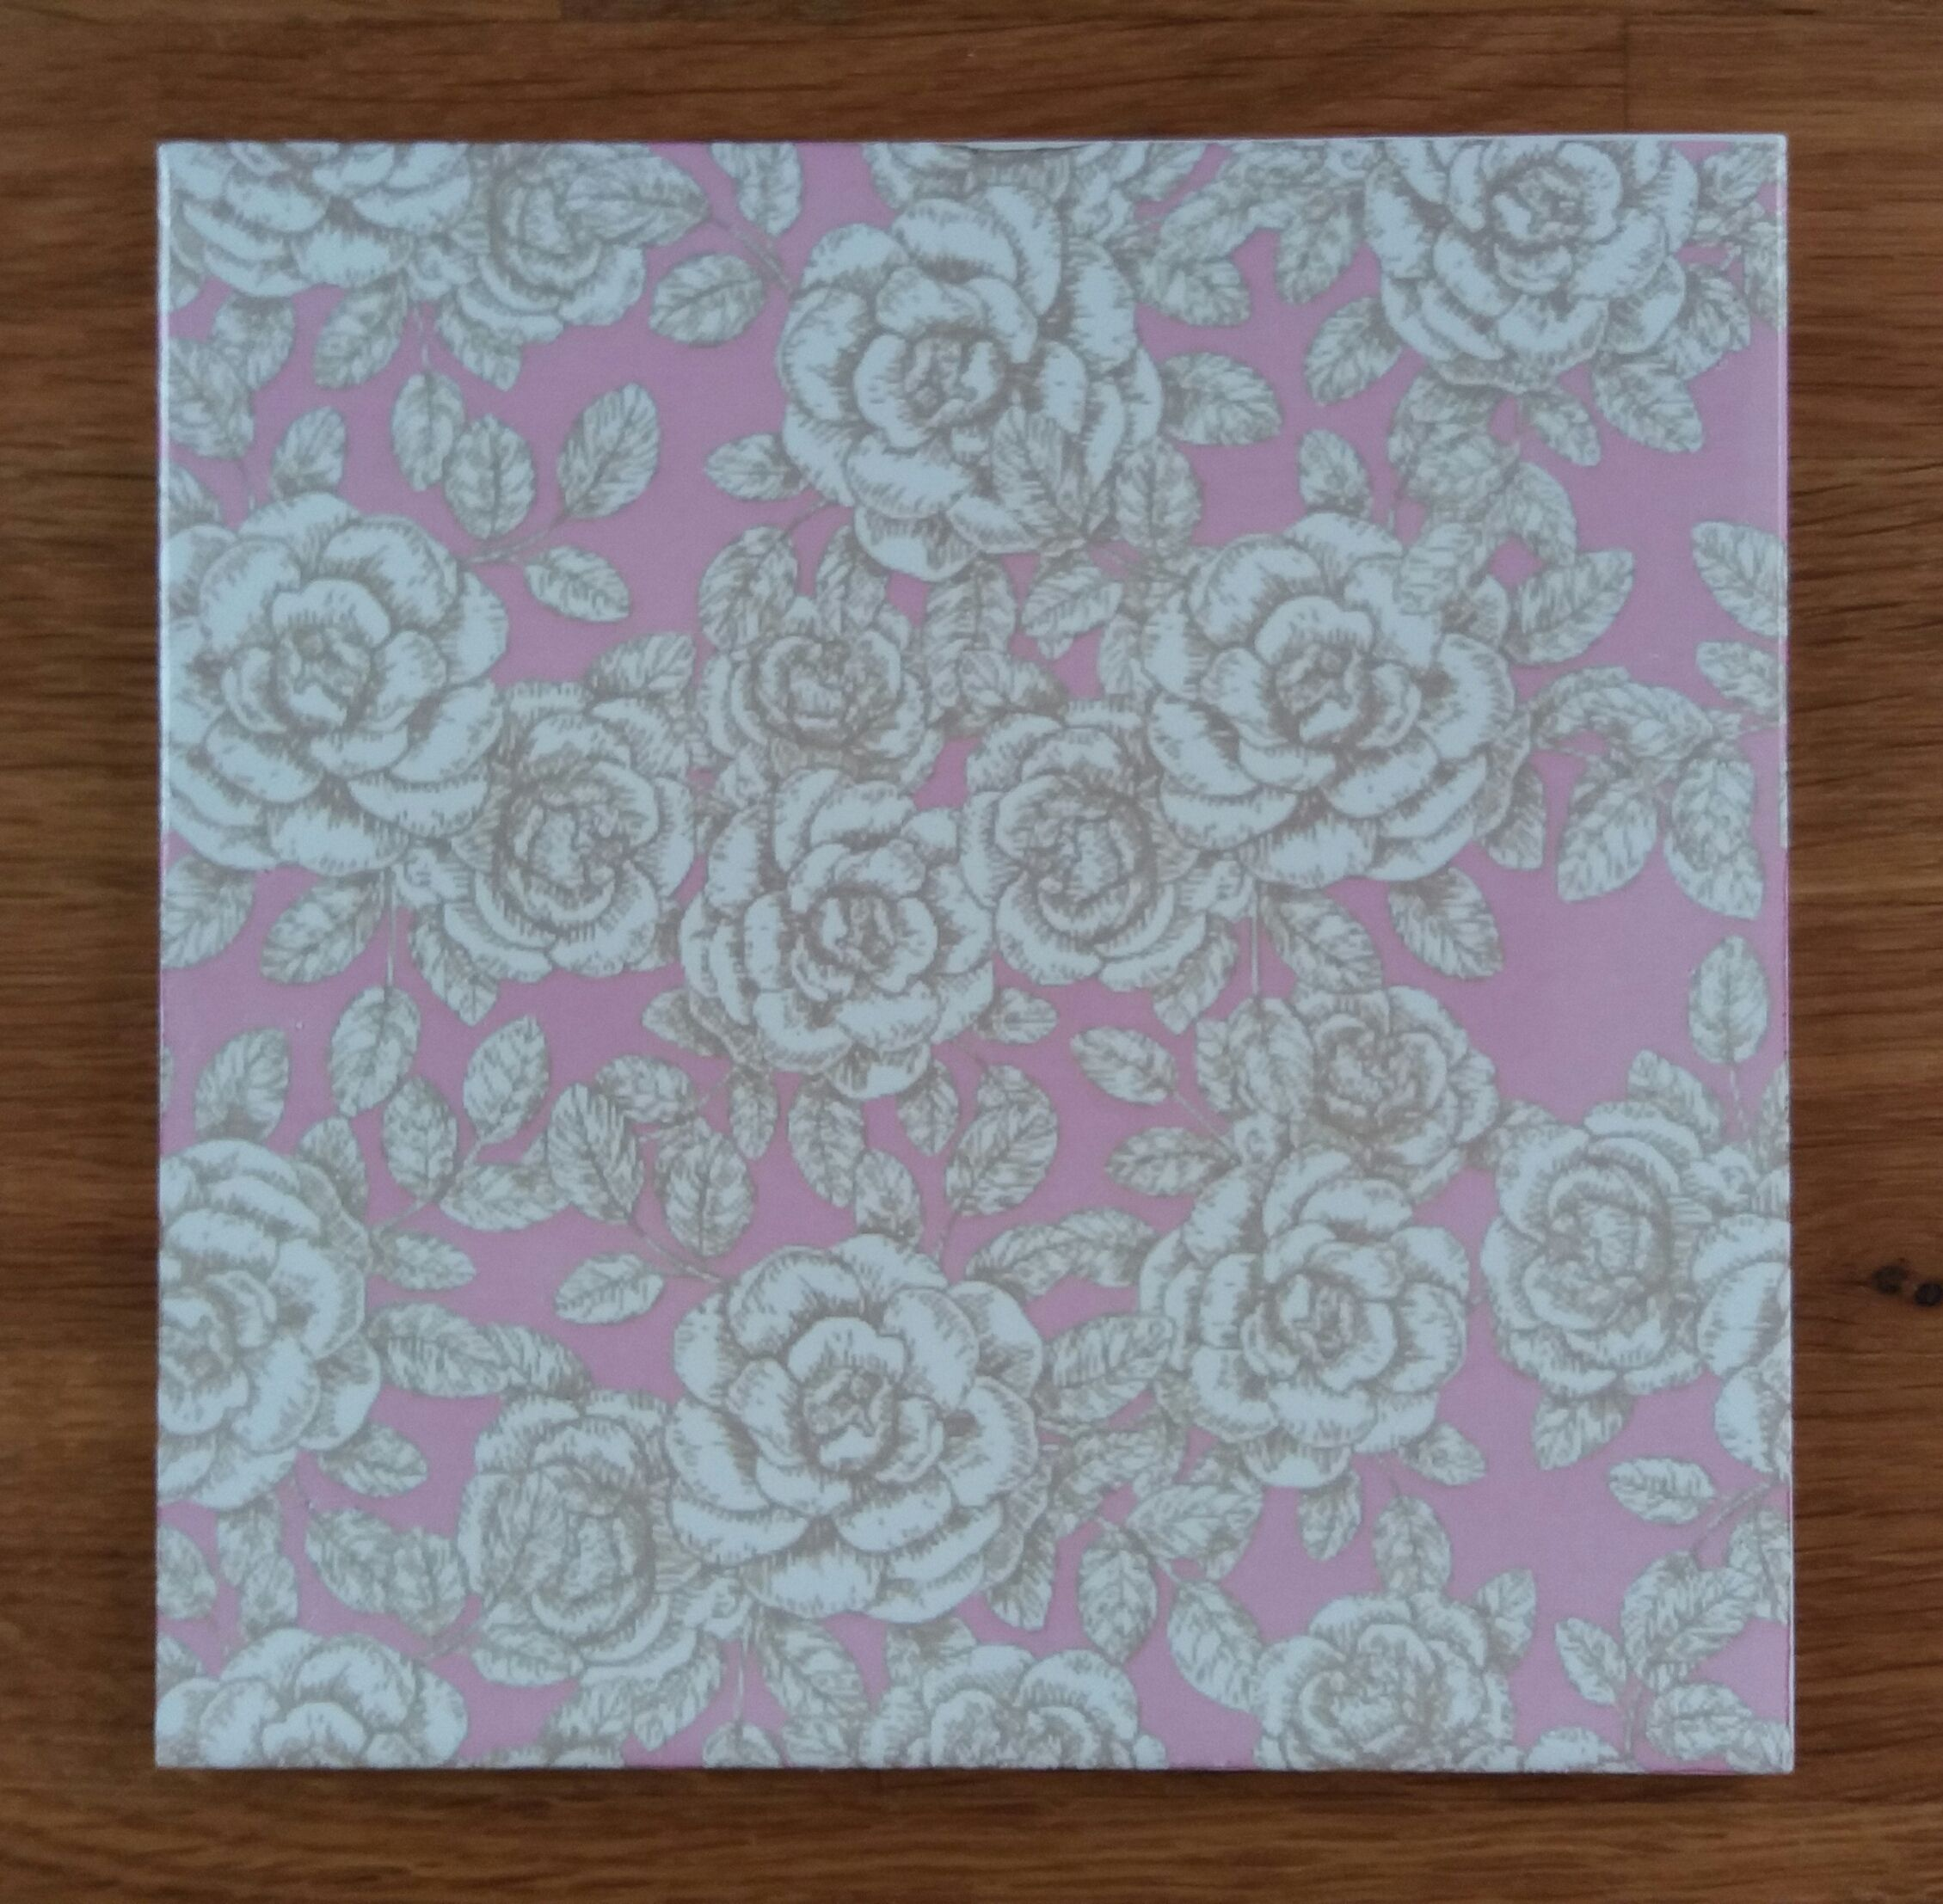 Pink and white floral patterned decorative ceramic wall tile by